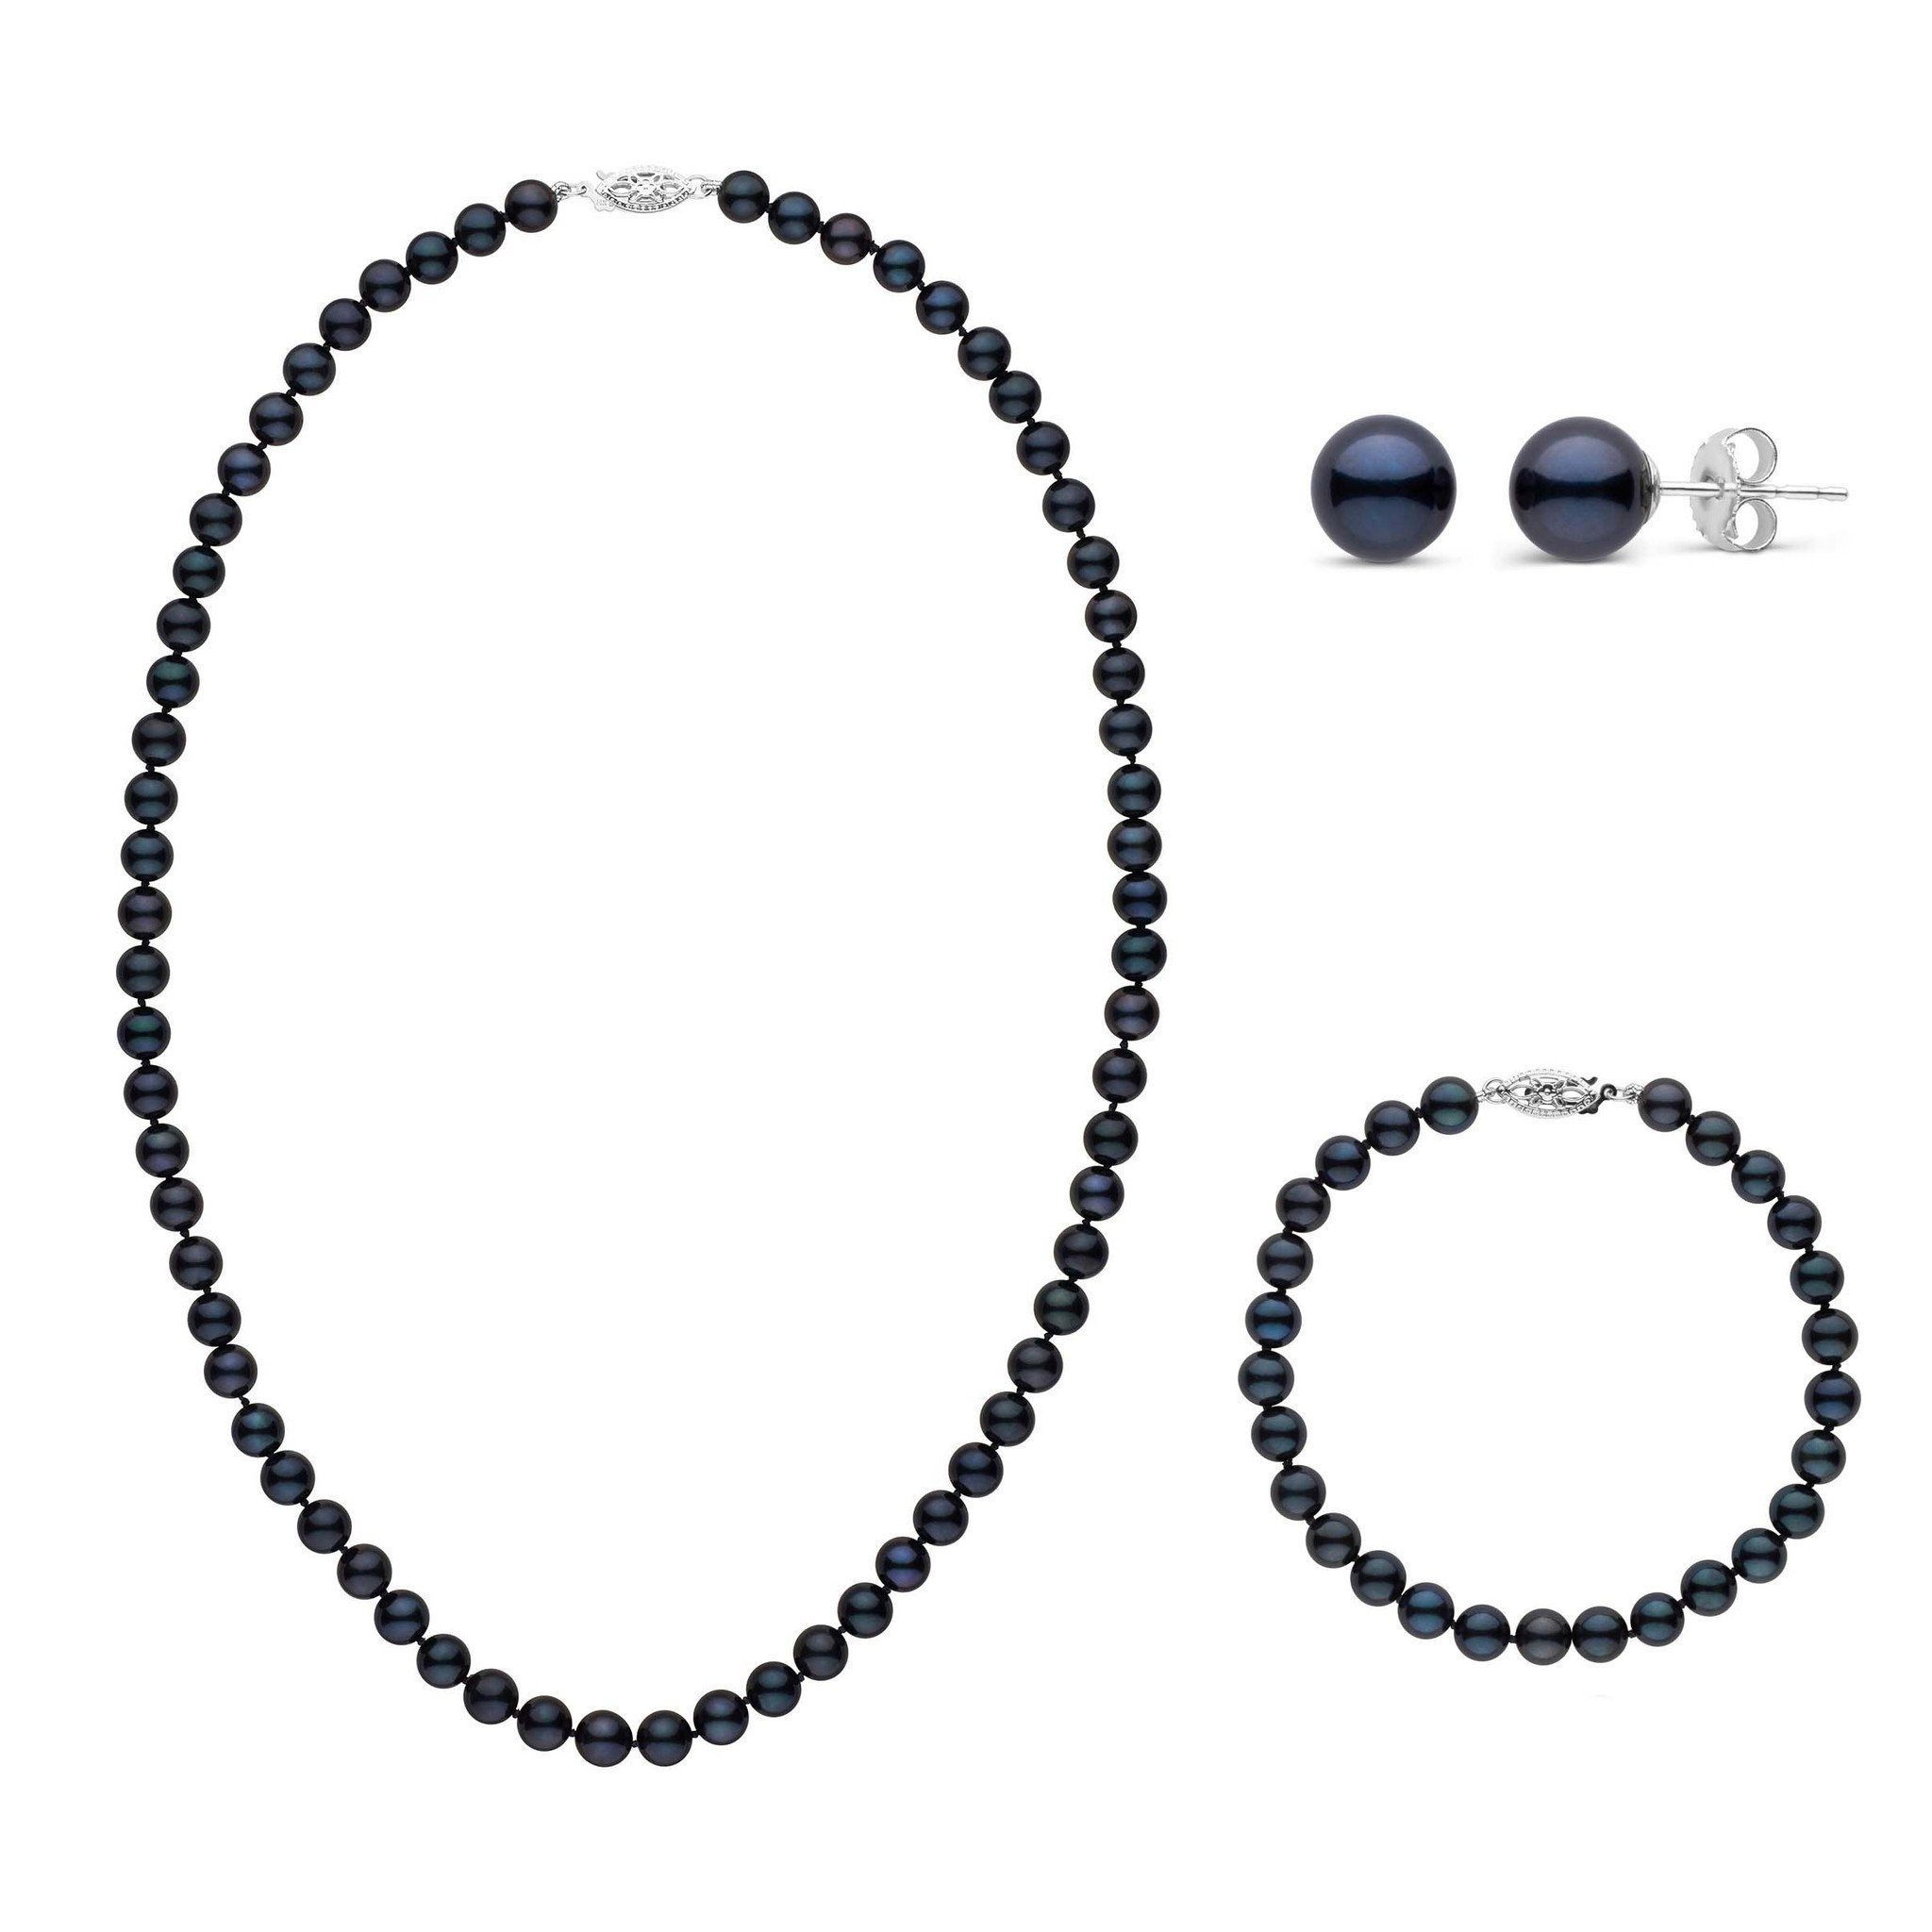 18 Inch 3 Piece Set of 6.0-6.5 mm AA+ Black Akoya Pearls